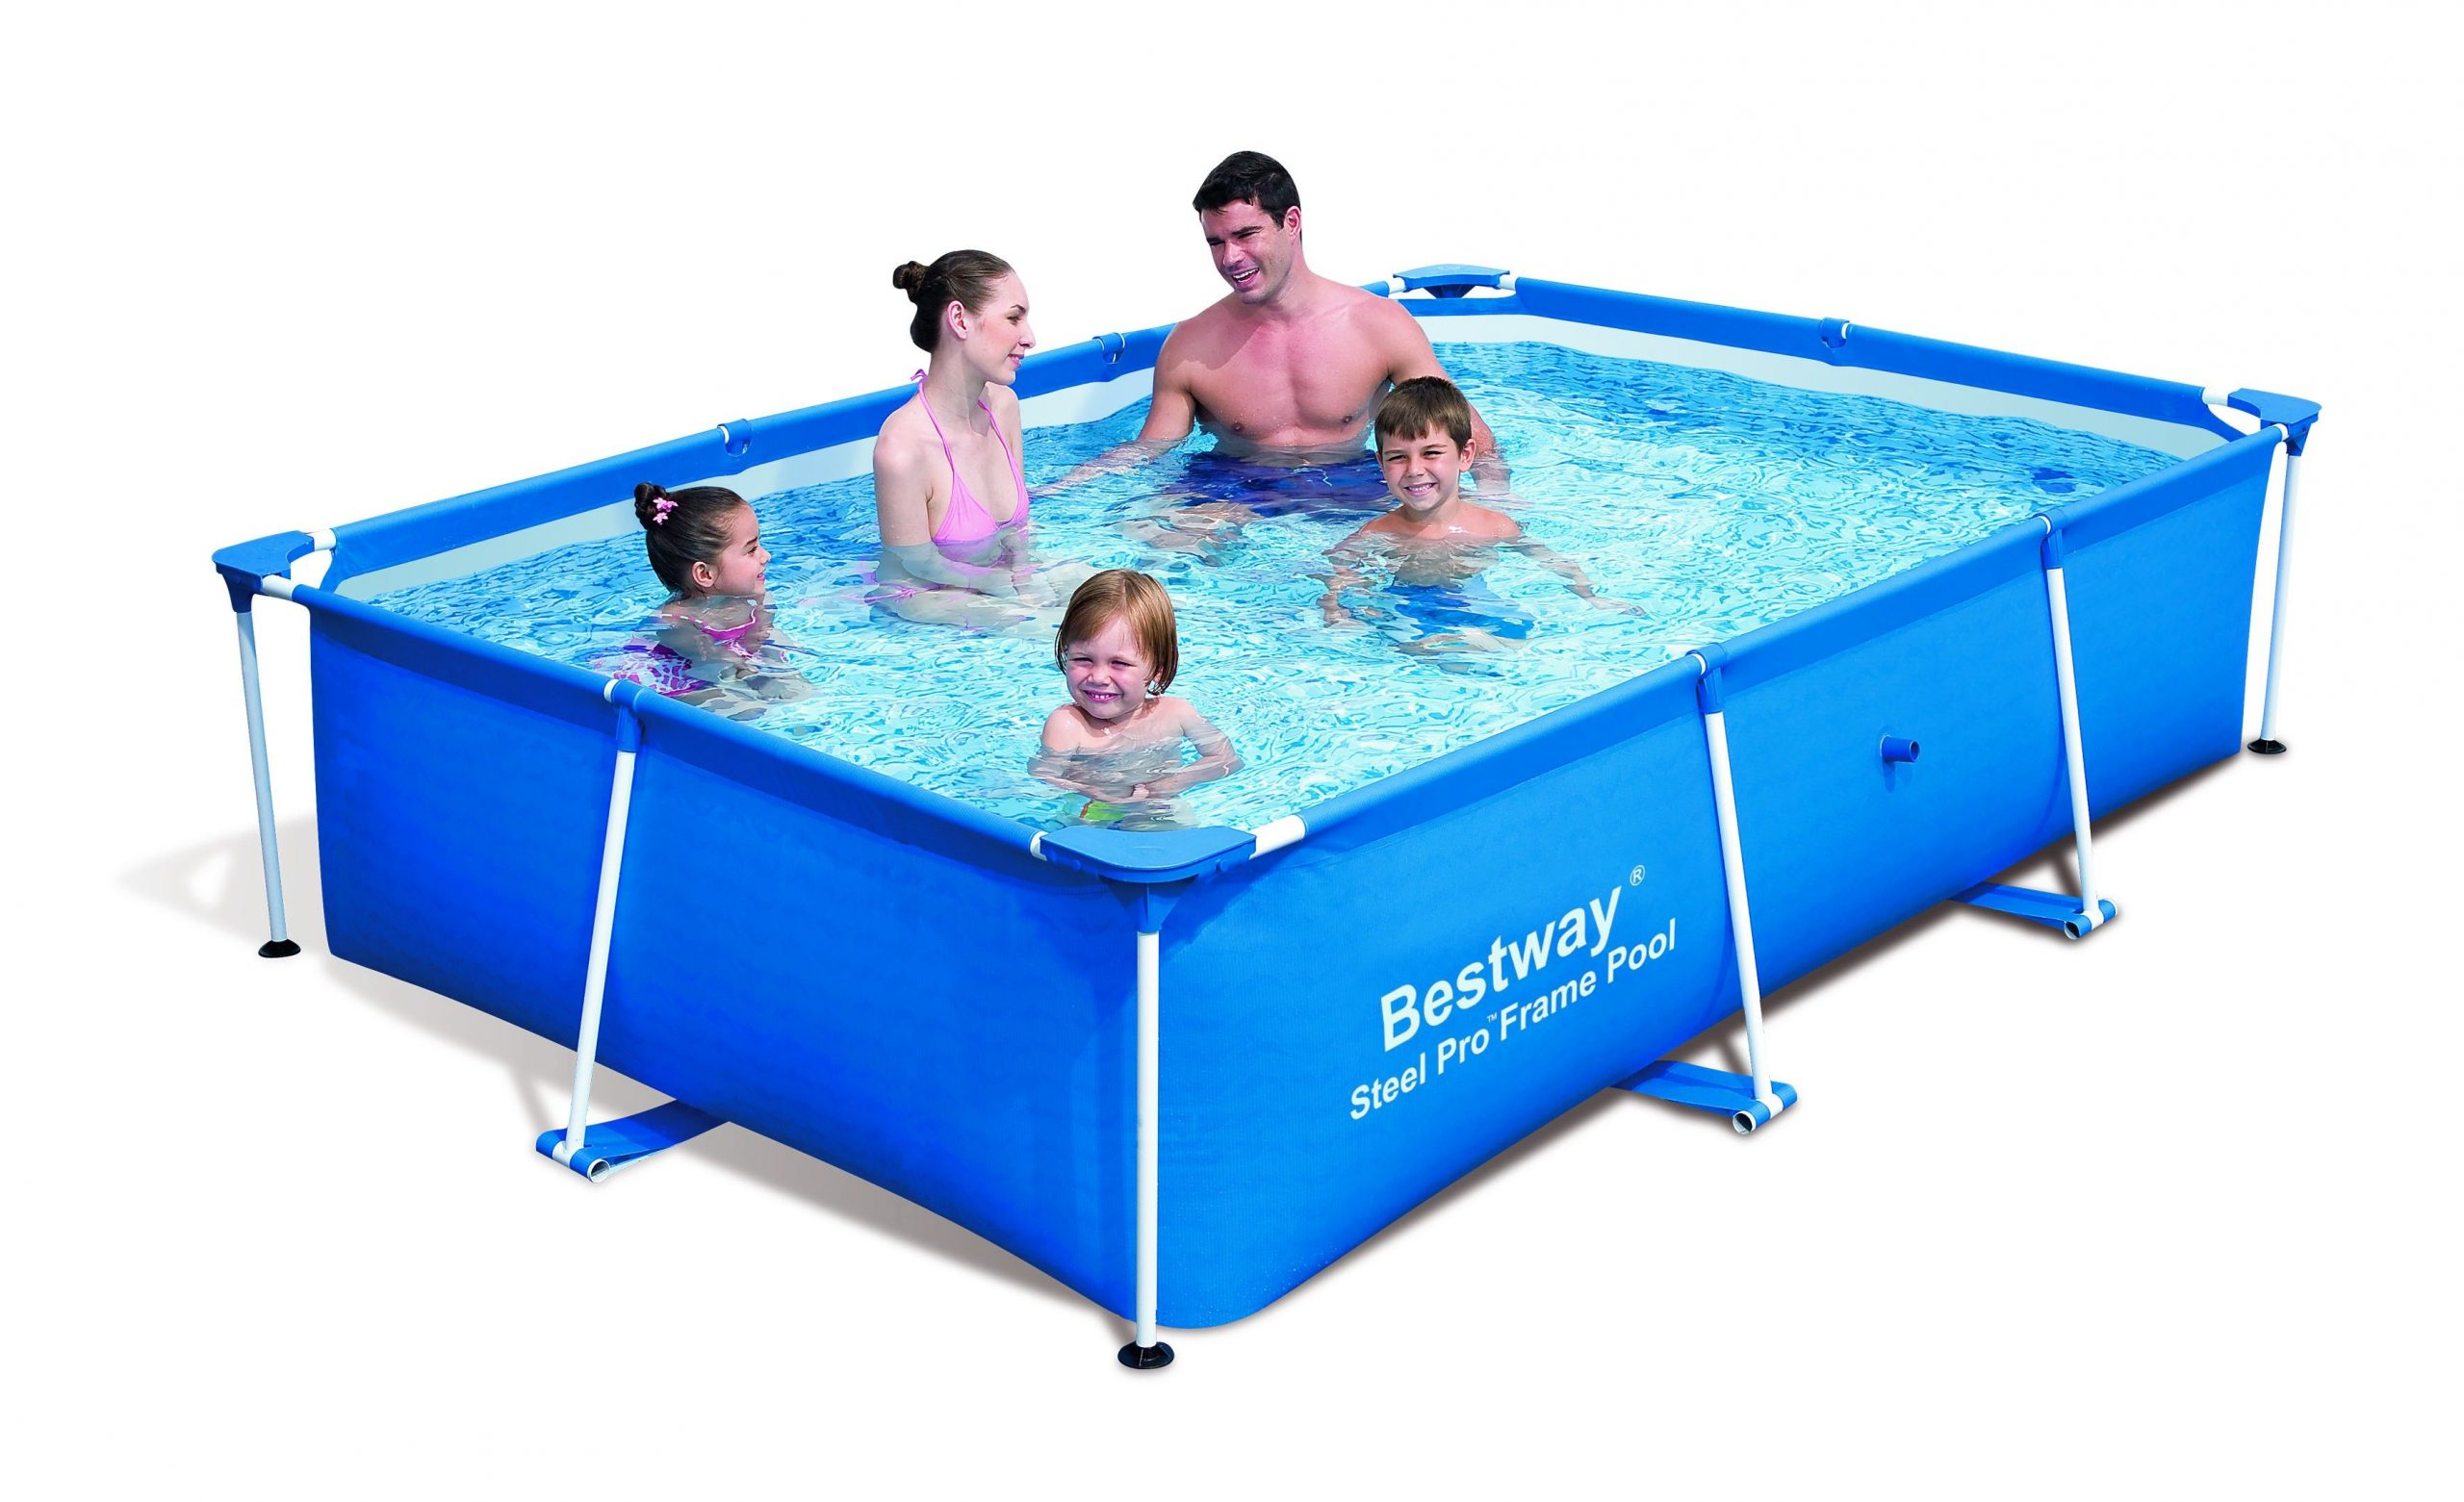 Piscine Rectangulaire Splash Frame Pools Bleue Au Meilleur ... encequiconcerne Piscine Tubulaire Carrée